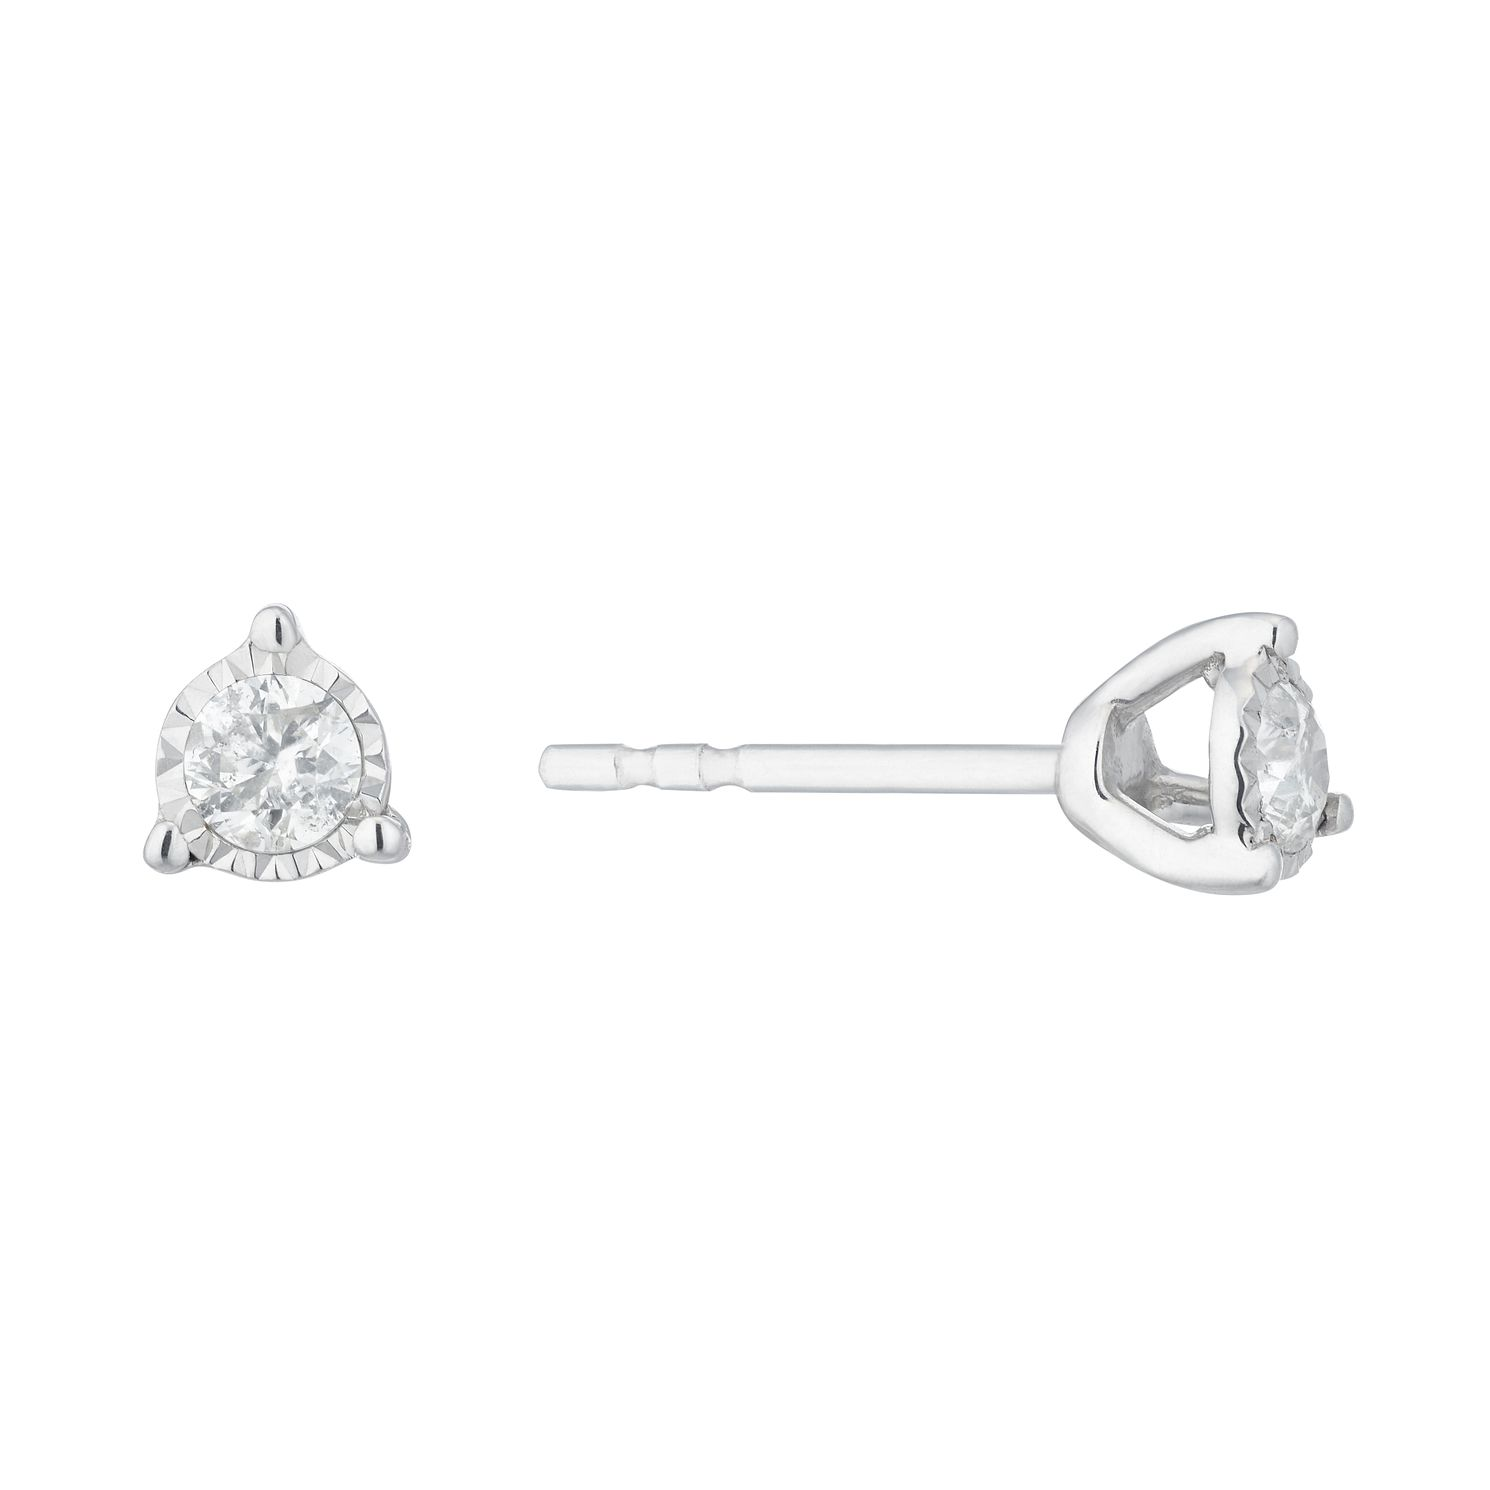 Silver & Diamond Illusion Solitaire Stud Earrings - Product number 1034189